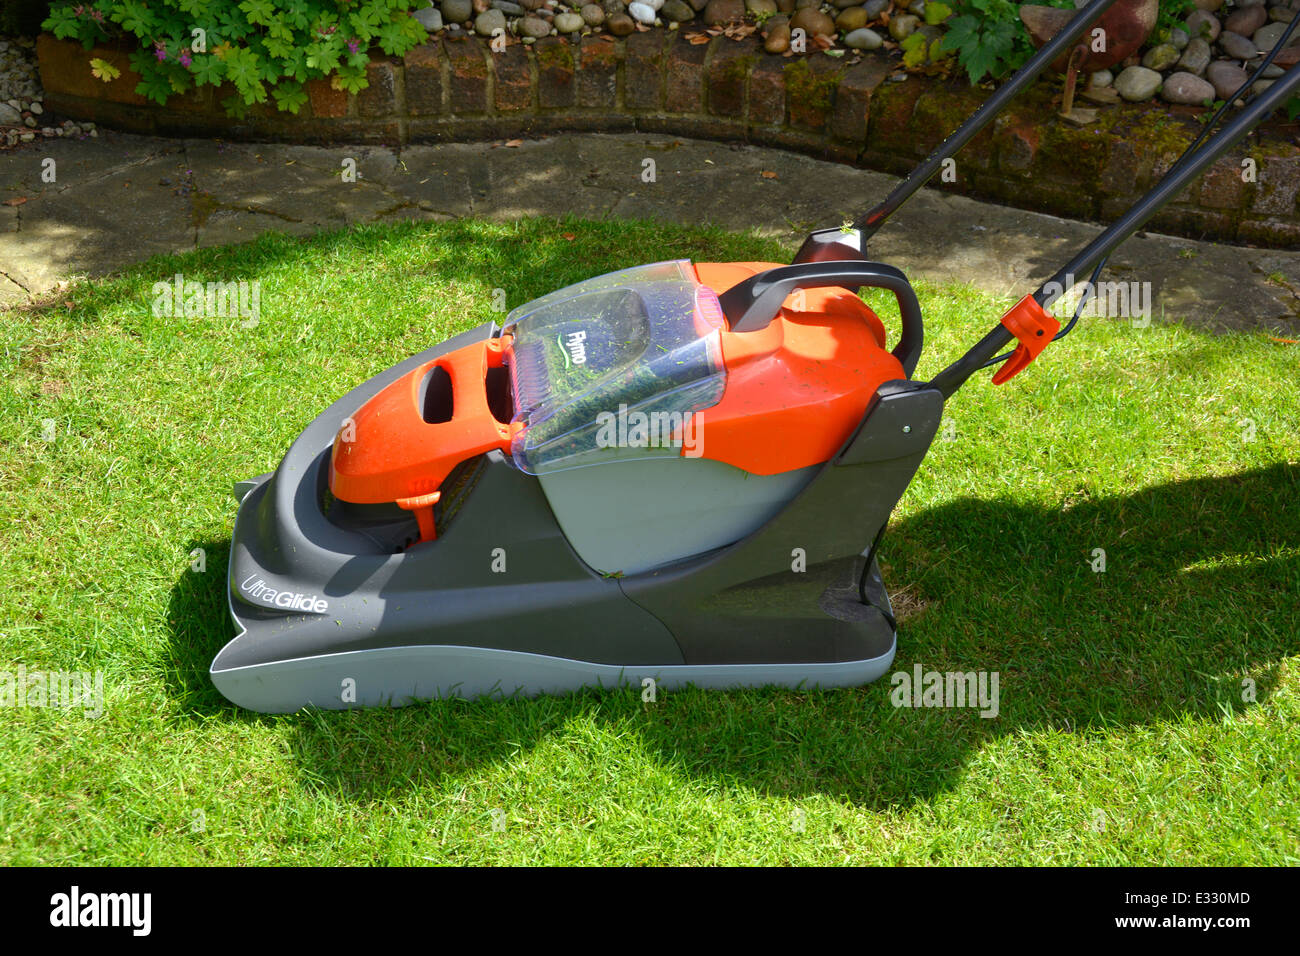 New Flymo Ultra Glide lawn mower on domestic back garden grass lawn Essex England UK - Stock Image